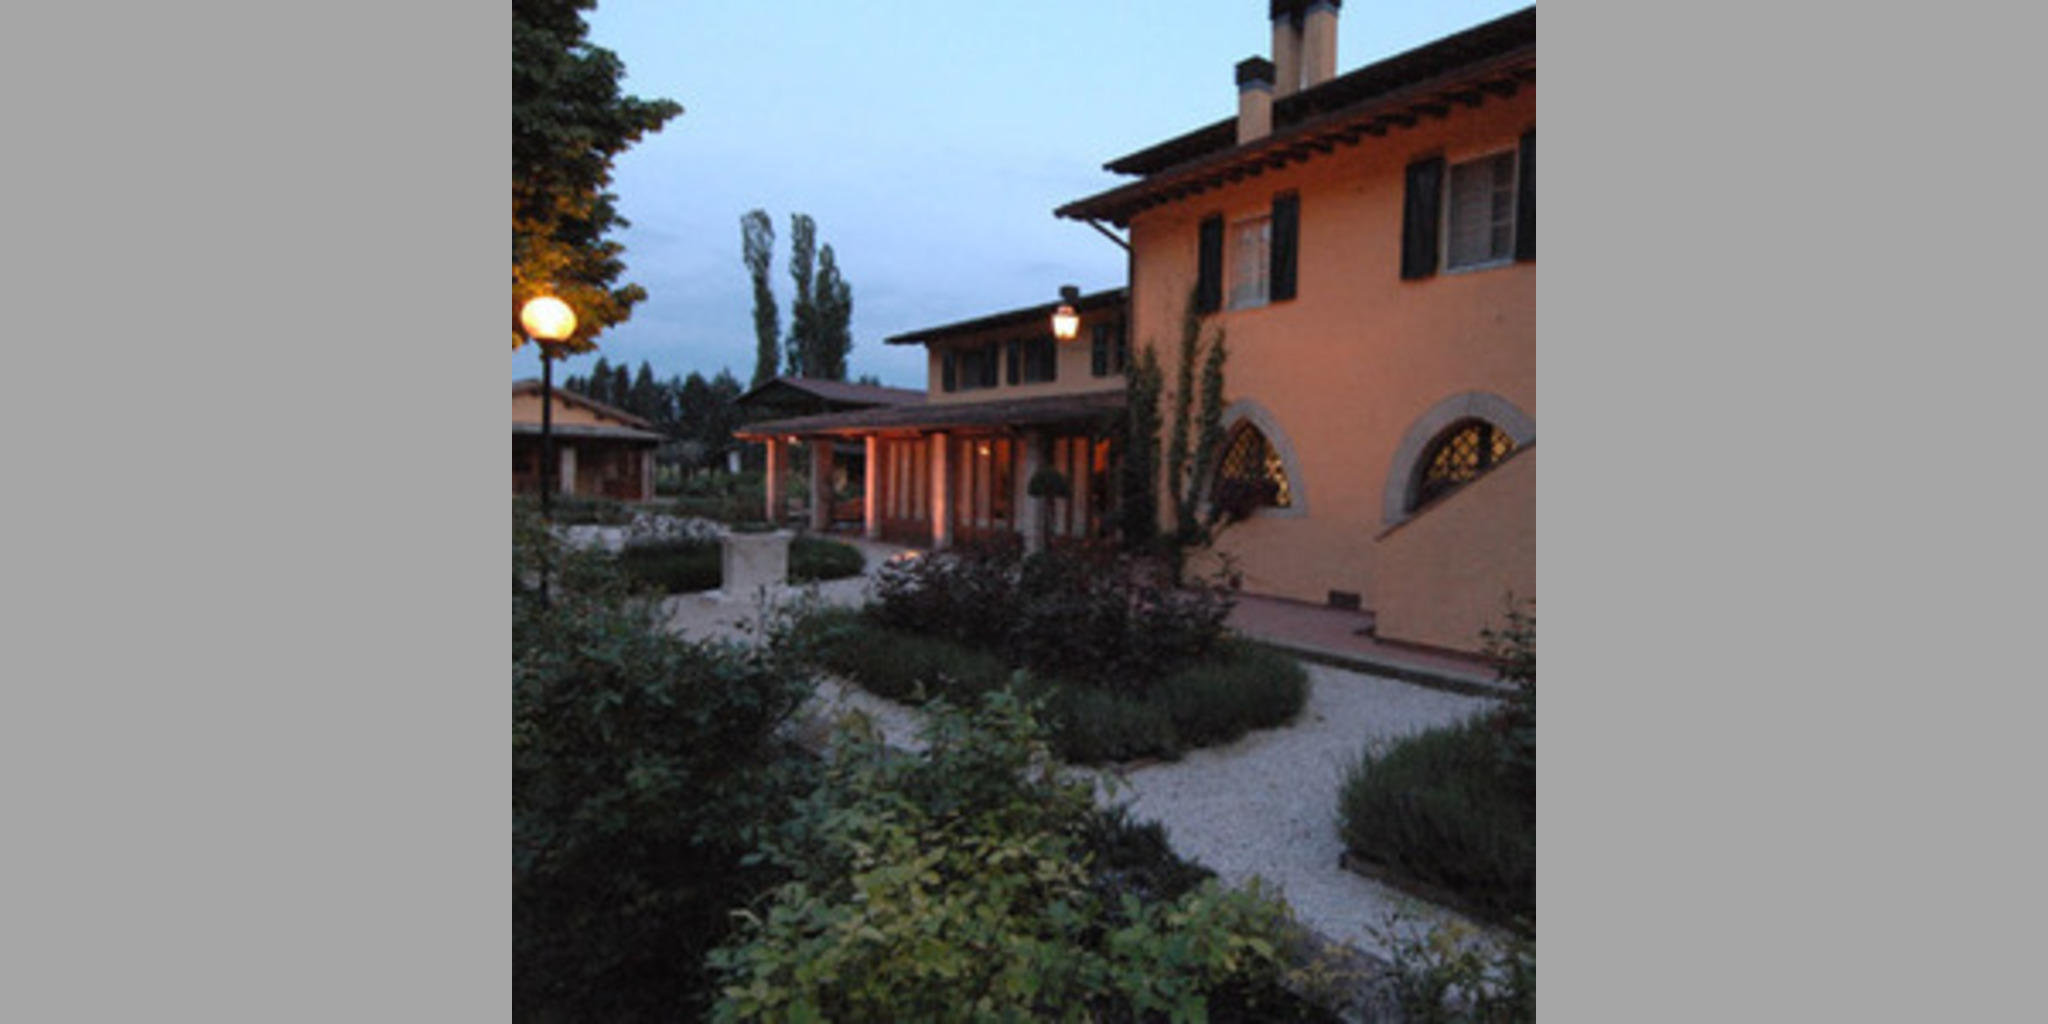 Farmhouse Assisi - Tordandrea